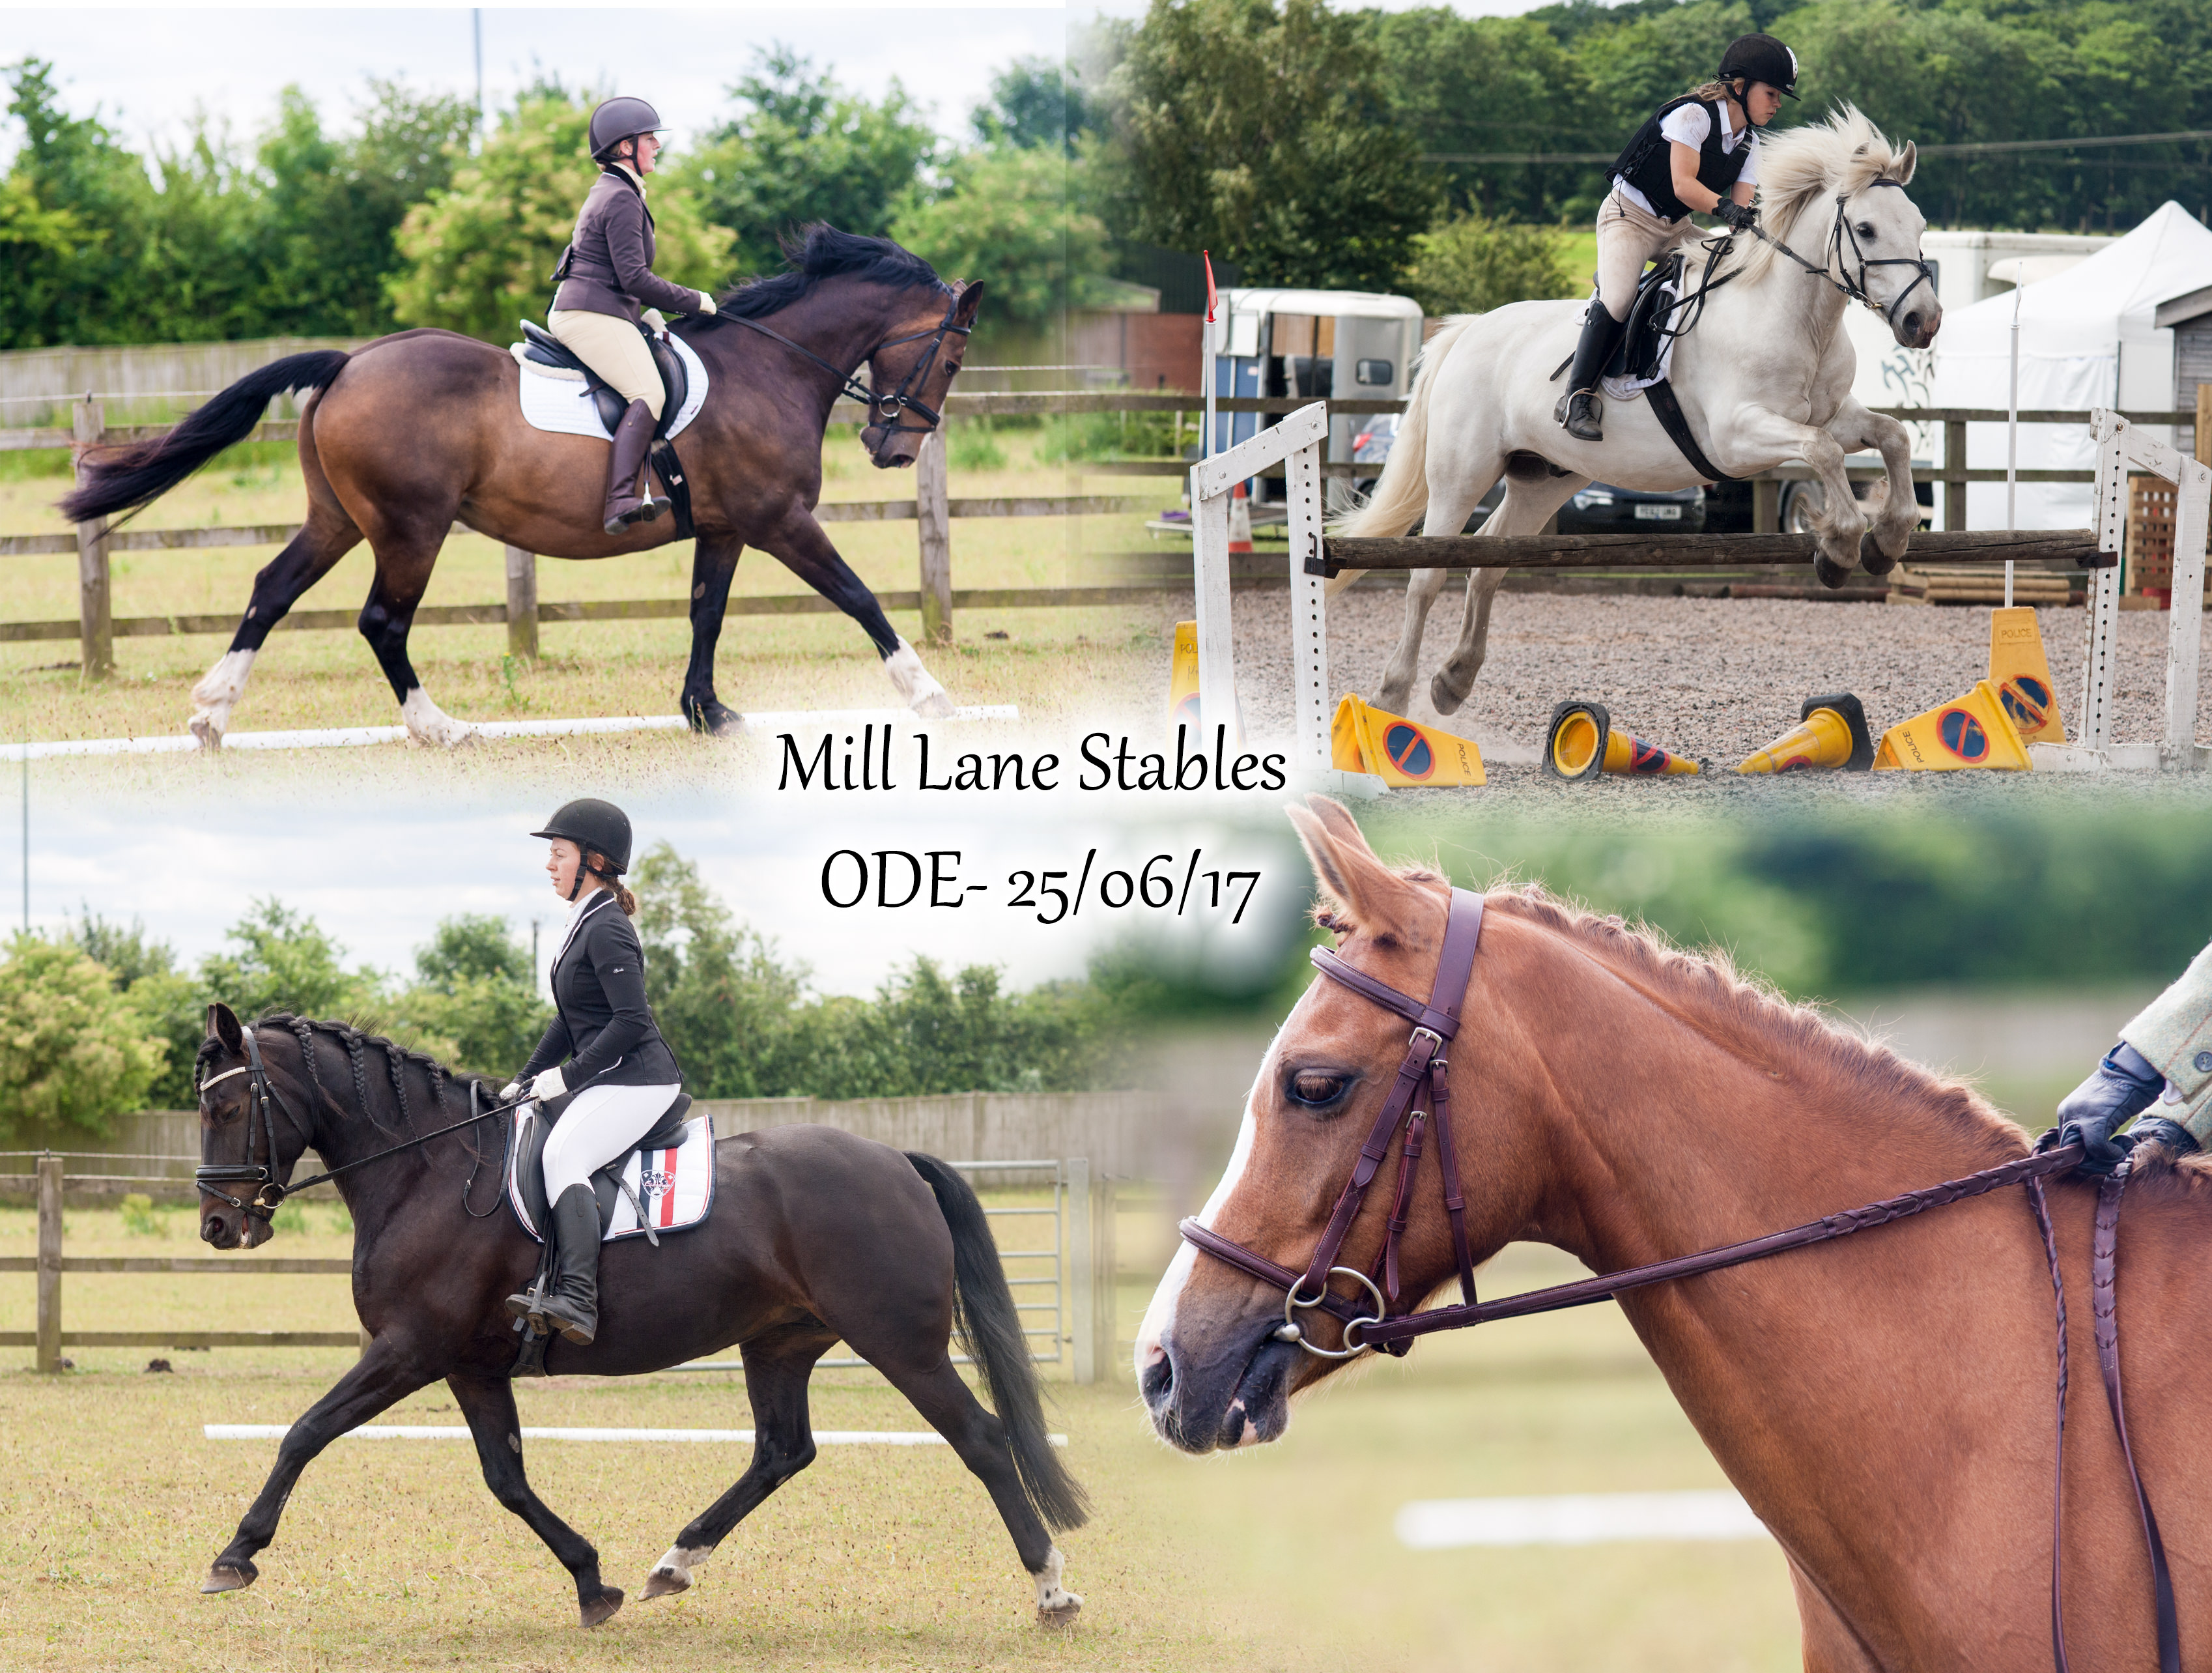 Mill Lane Stables One Day Event